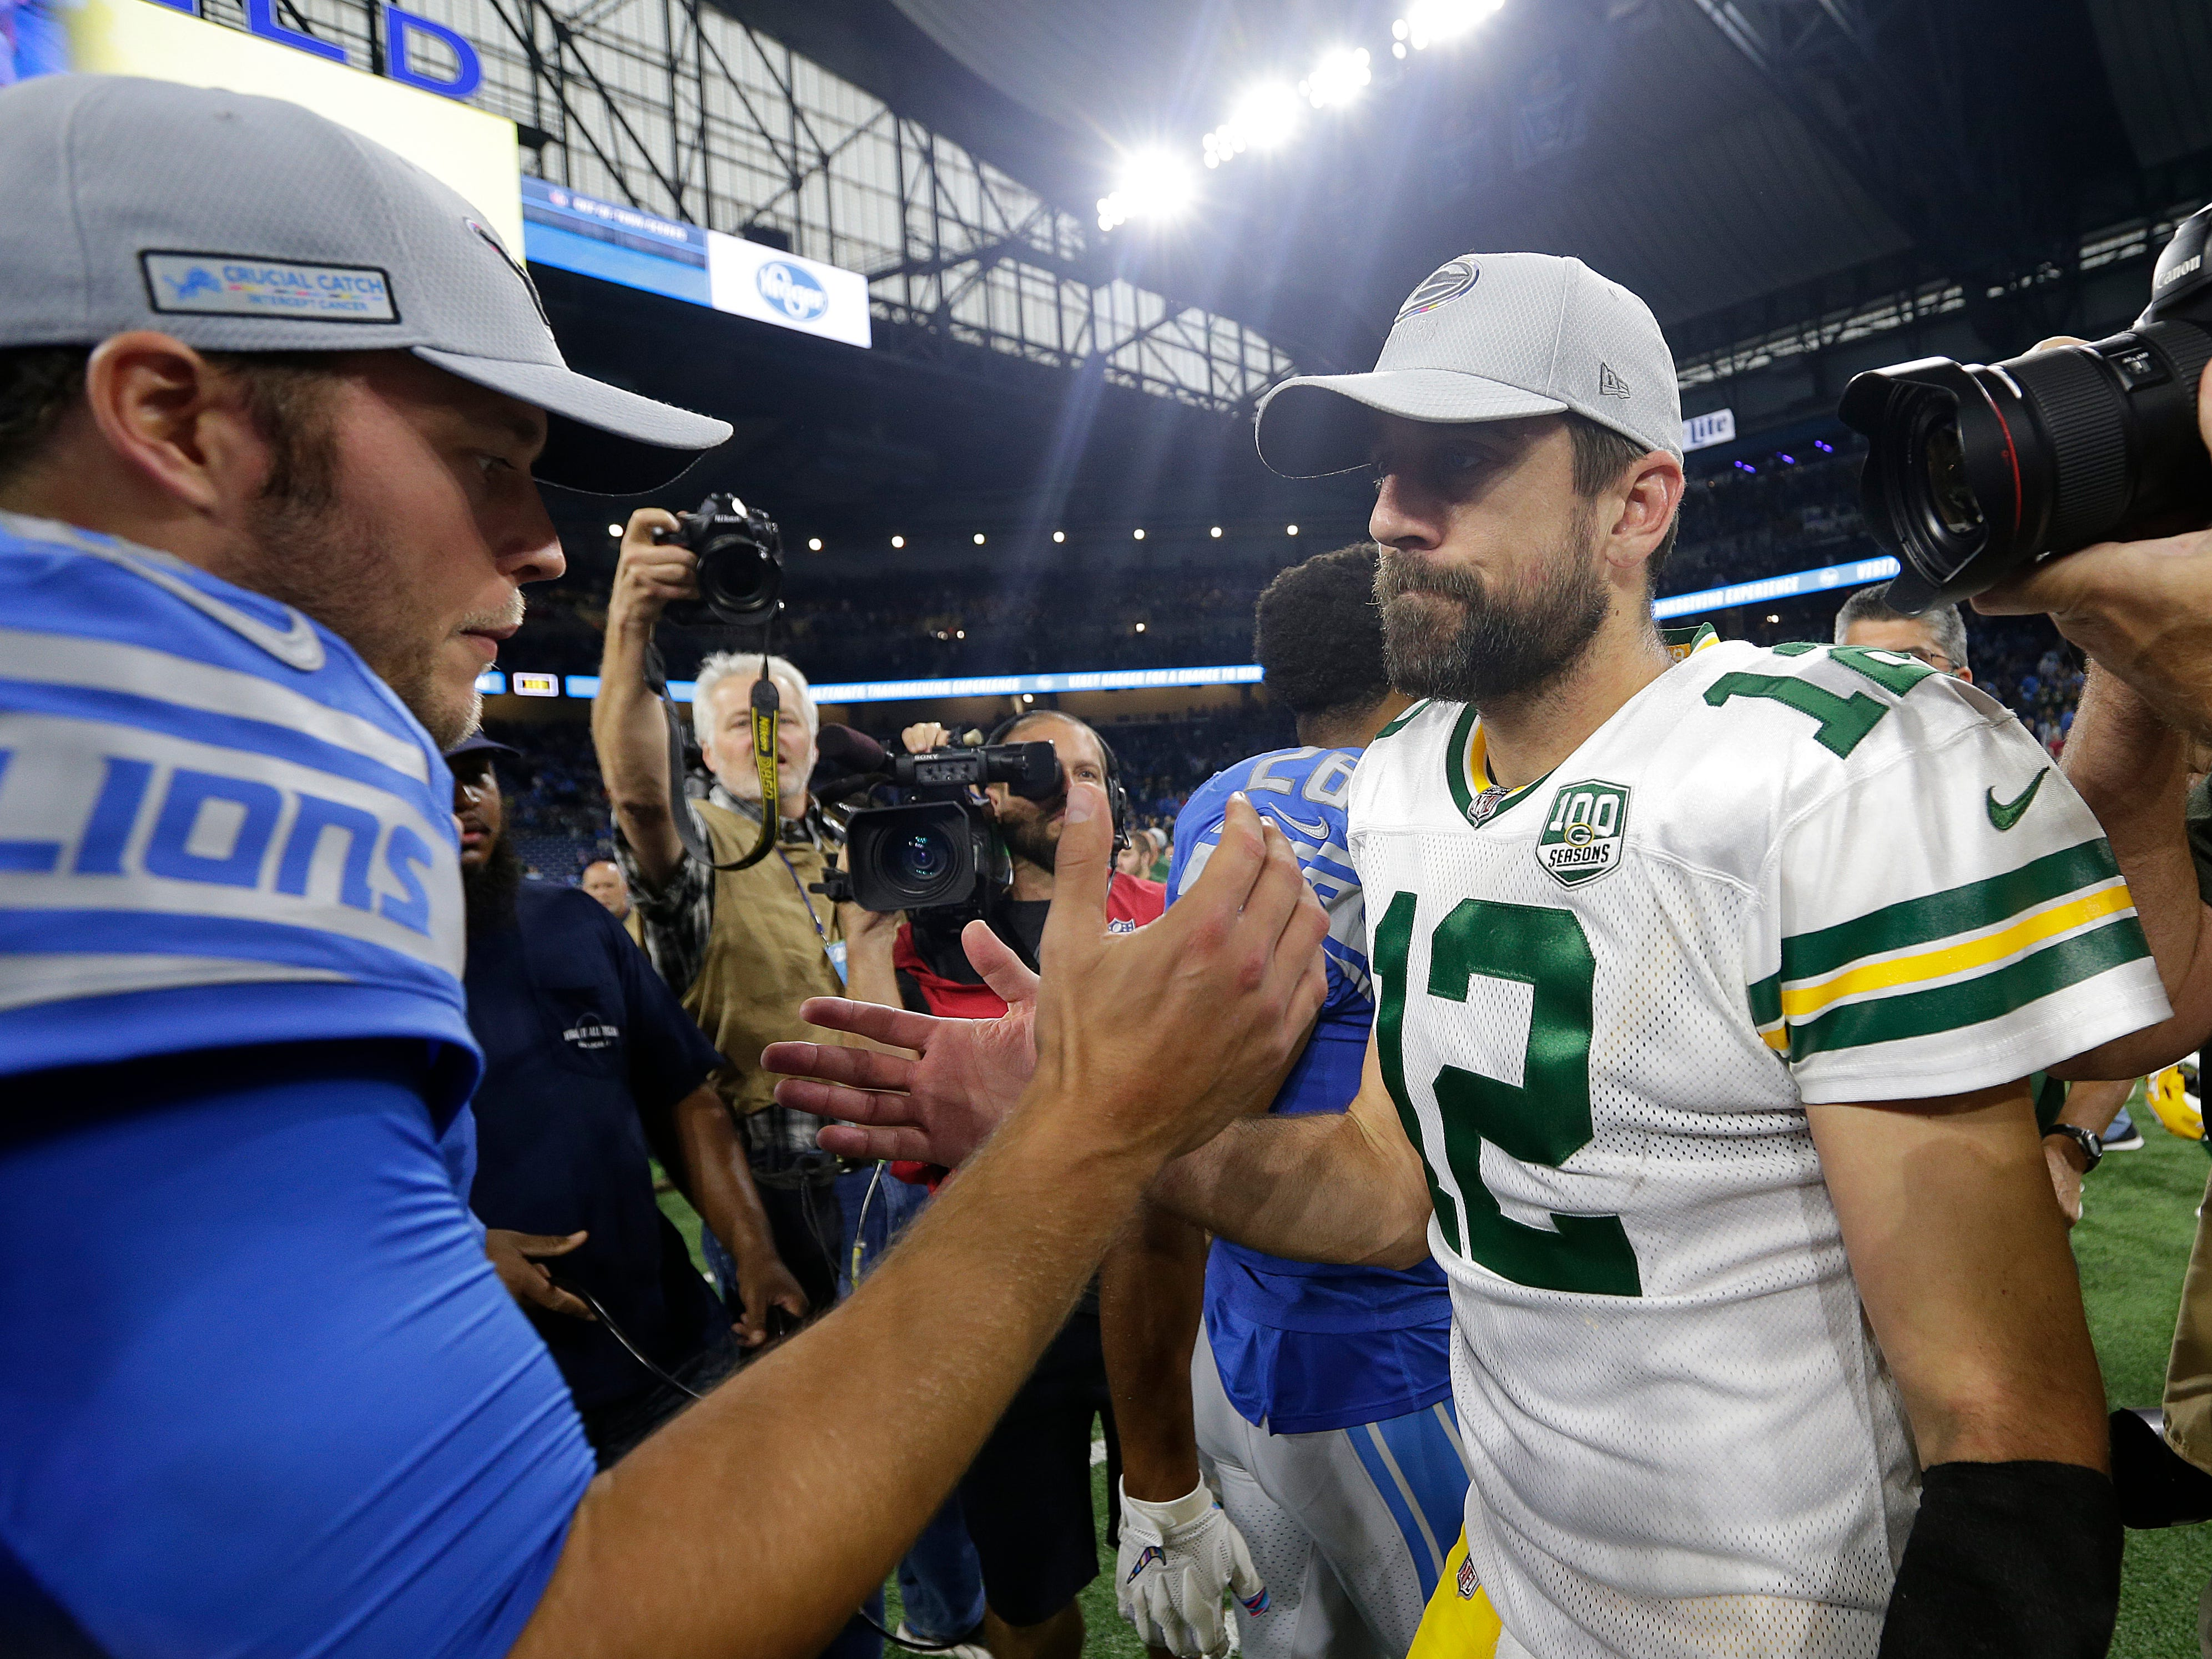 Detroit Lions quarterback Matthew Stafford (9) greets Green Bay Packers quarterback Aaron Rodgers (12) after during  Green Bay Packers 31-23 loss to the Detroit Lions at Ford Field, Detroit, Sunday, October 7, 2018.   Rick Wood/Milwaukee Journal Sentinel. USA